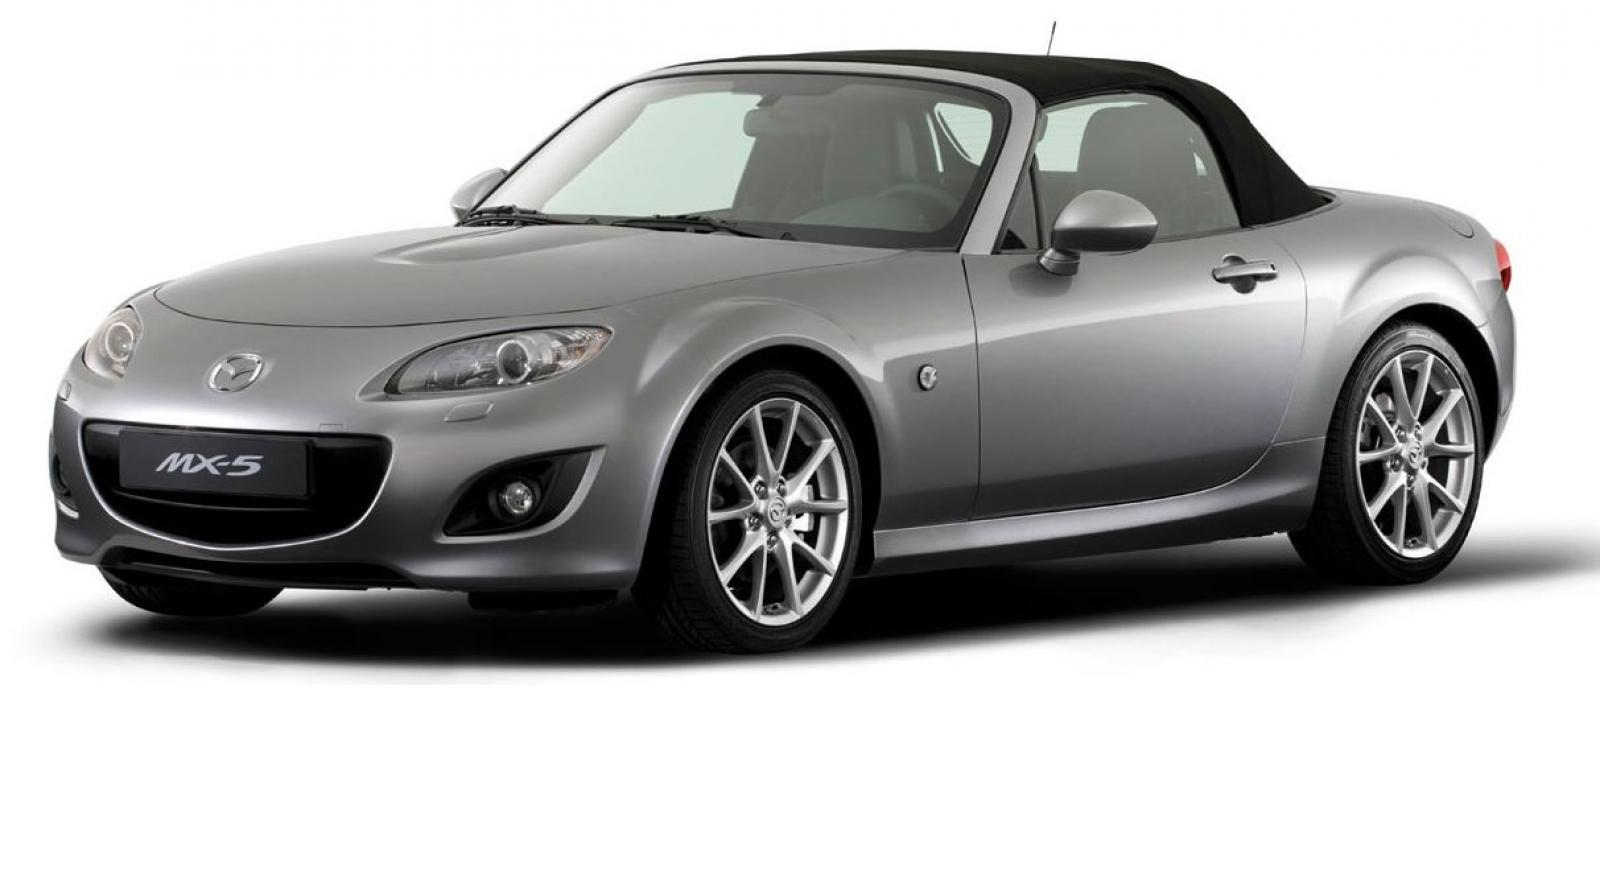 2009 mazda mx 5 miata information and photos zombiedrive. Black Bedroom Furniture Sets. Home Design Ideas